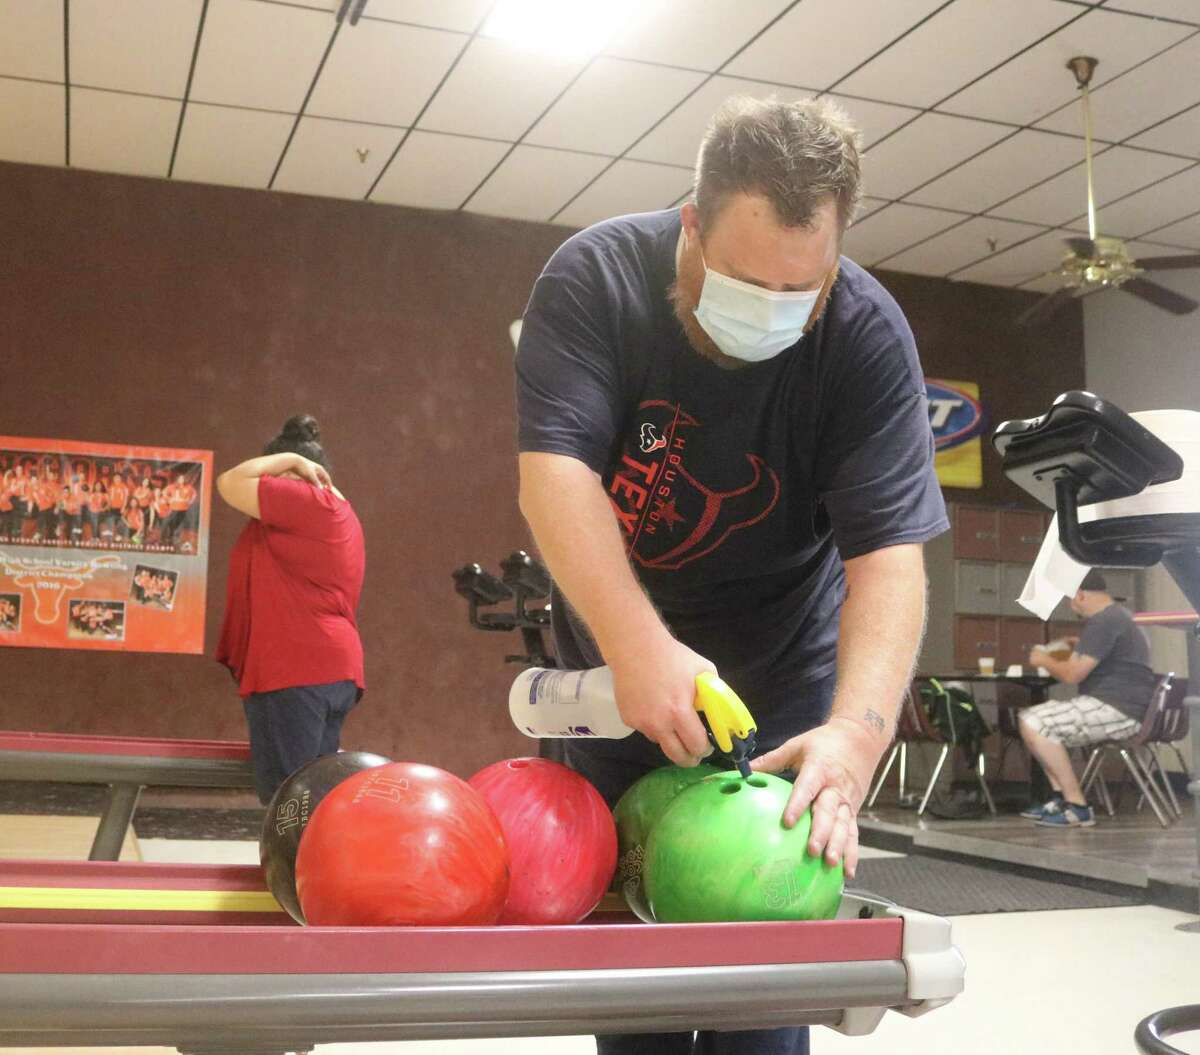 Armadilla Lanes employee Darrin Williams sprays disinfectant inside the finger holes of a ball Monday afternoon as the facility celebrated its long-awaited reopening.